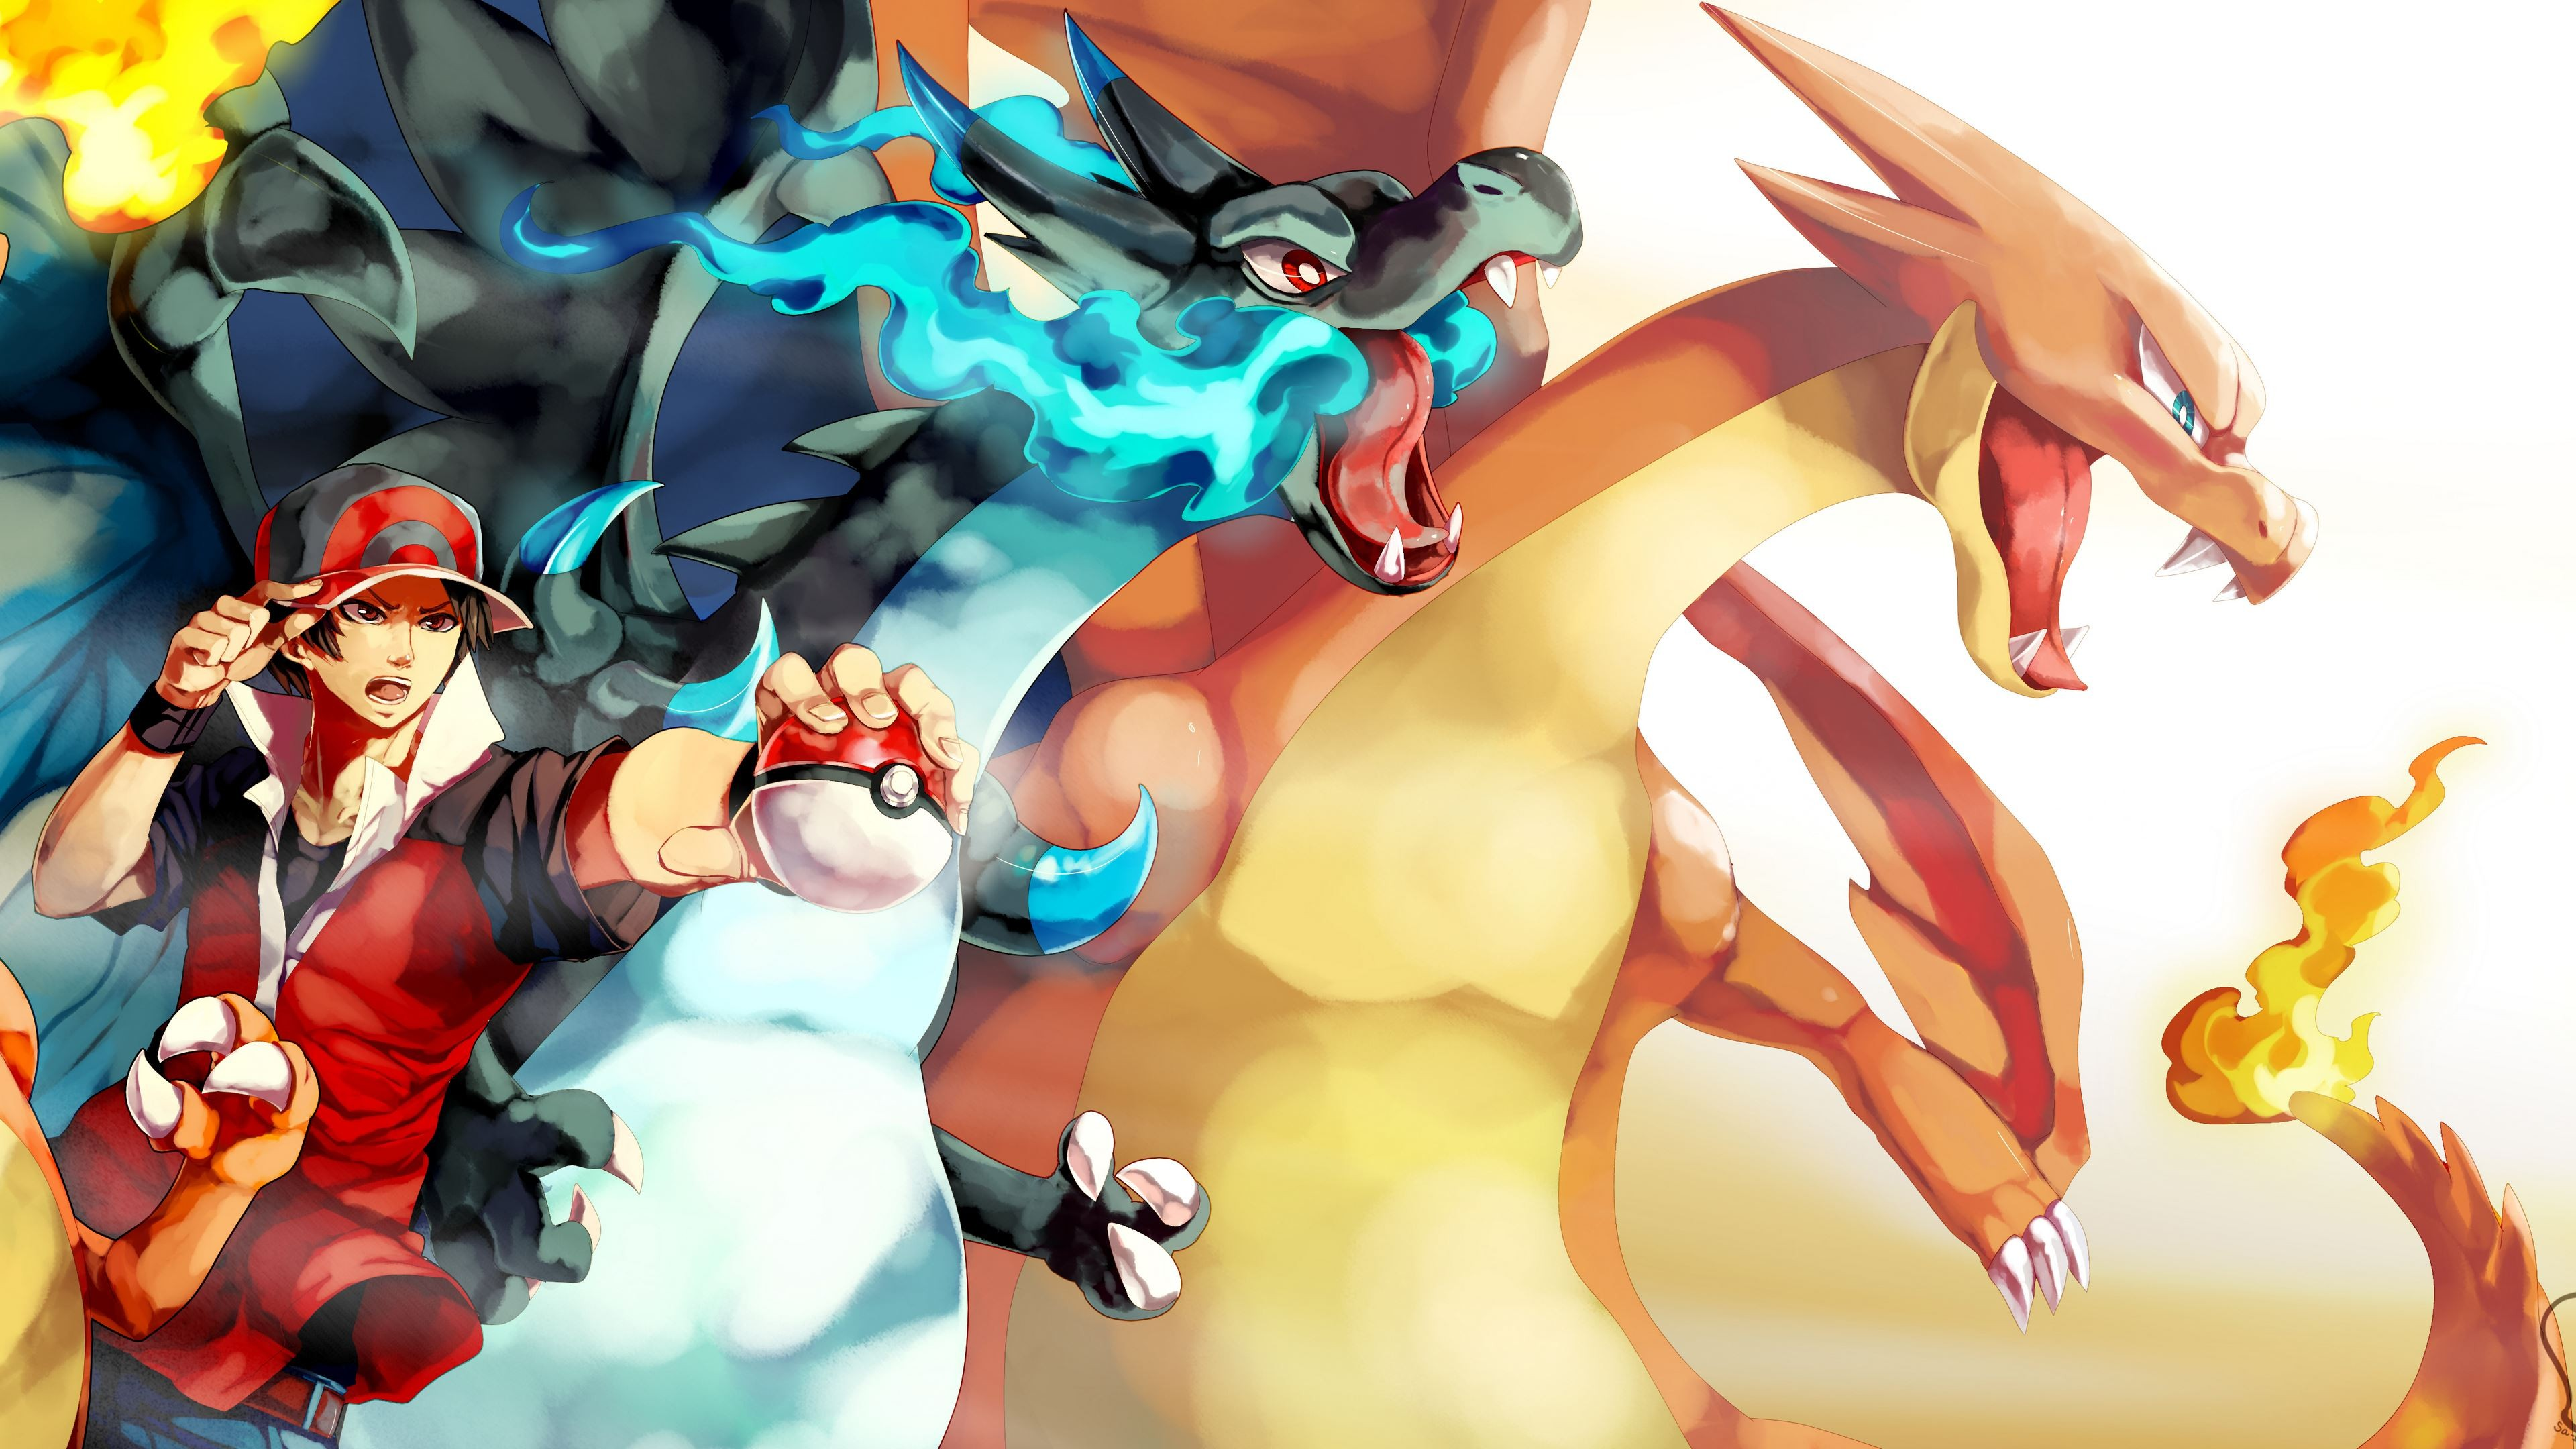 Pokemon Wallpaper Hd Red 3840x2160 Wallpaper Teahub Io